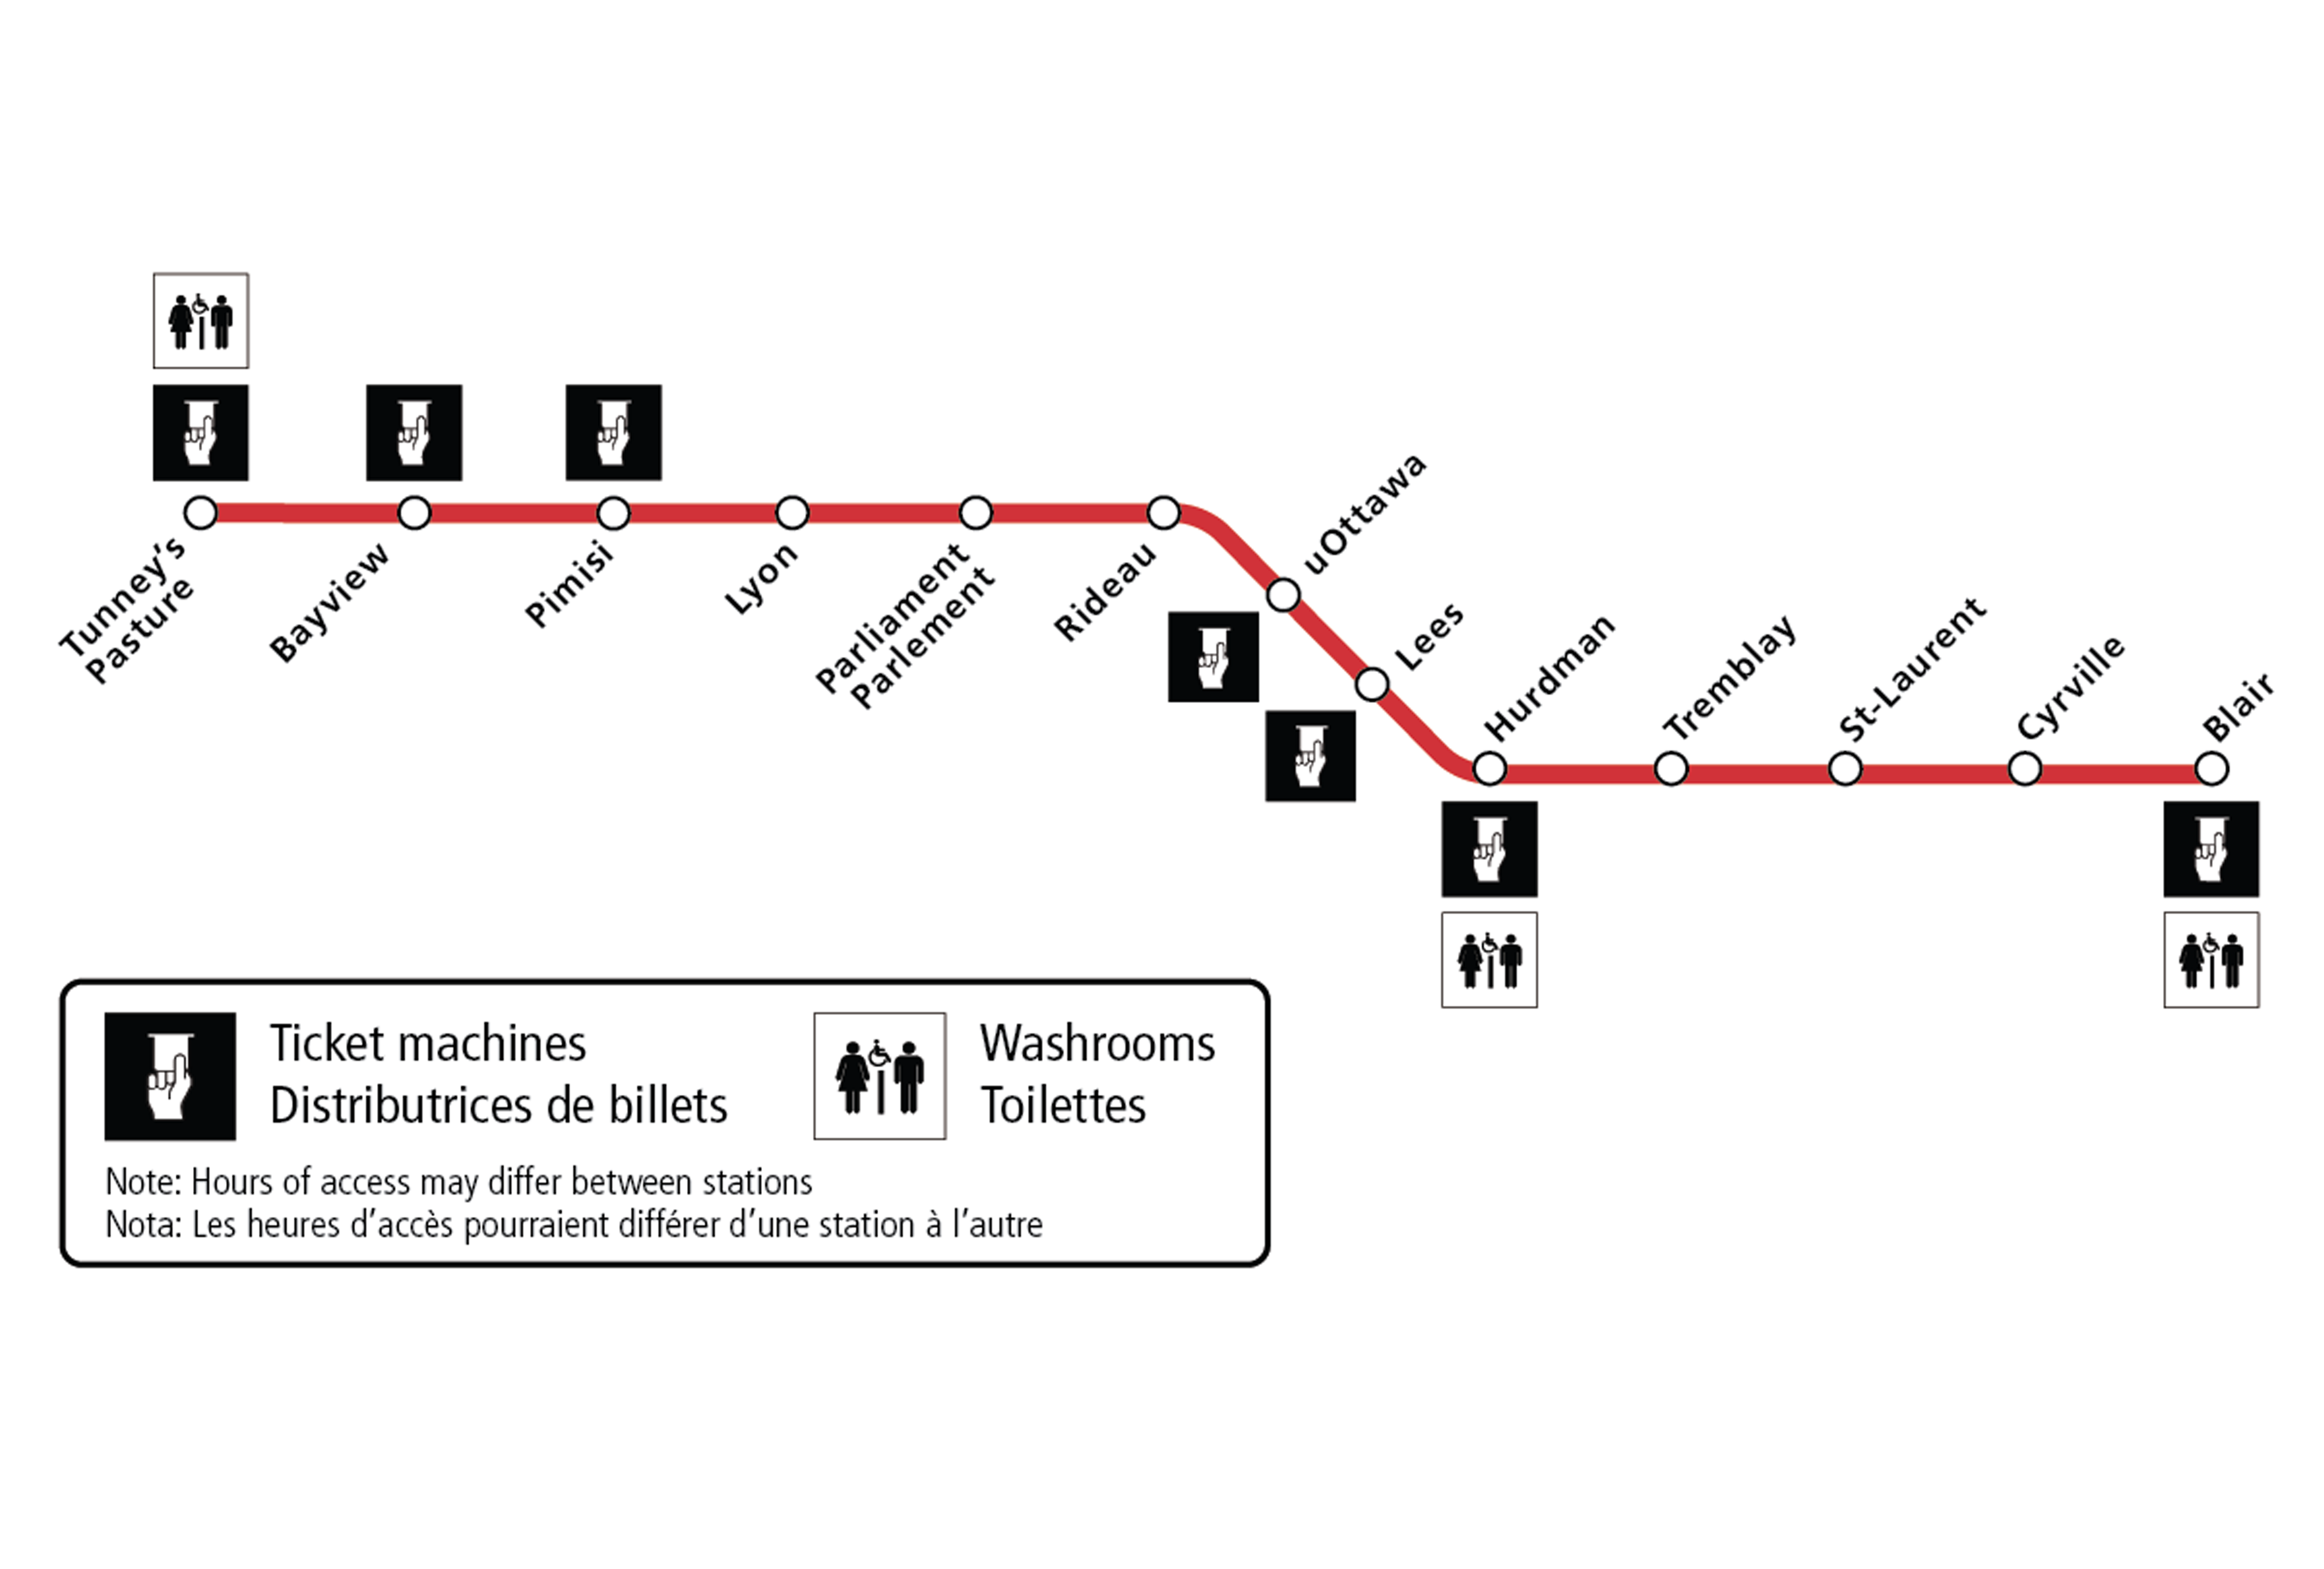 Image - Ticket machines and washrooms available during O-Train Line 1 suspension